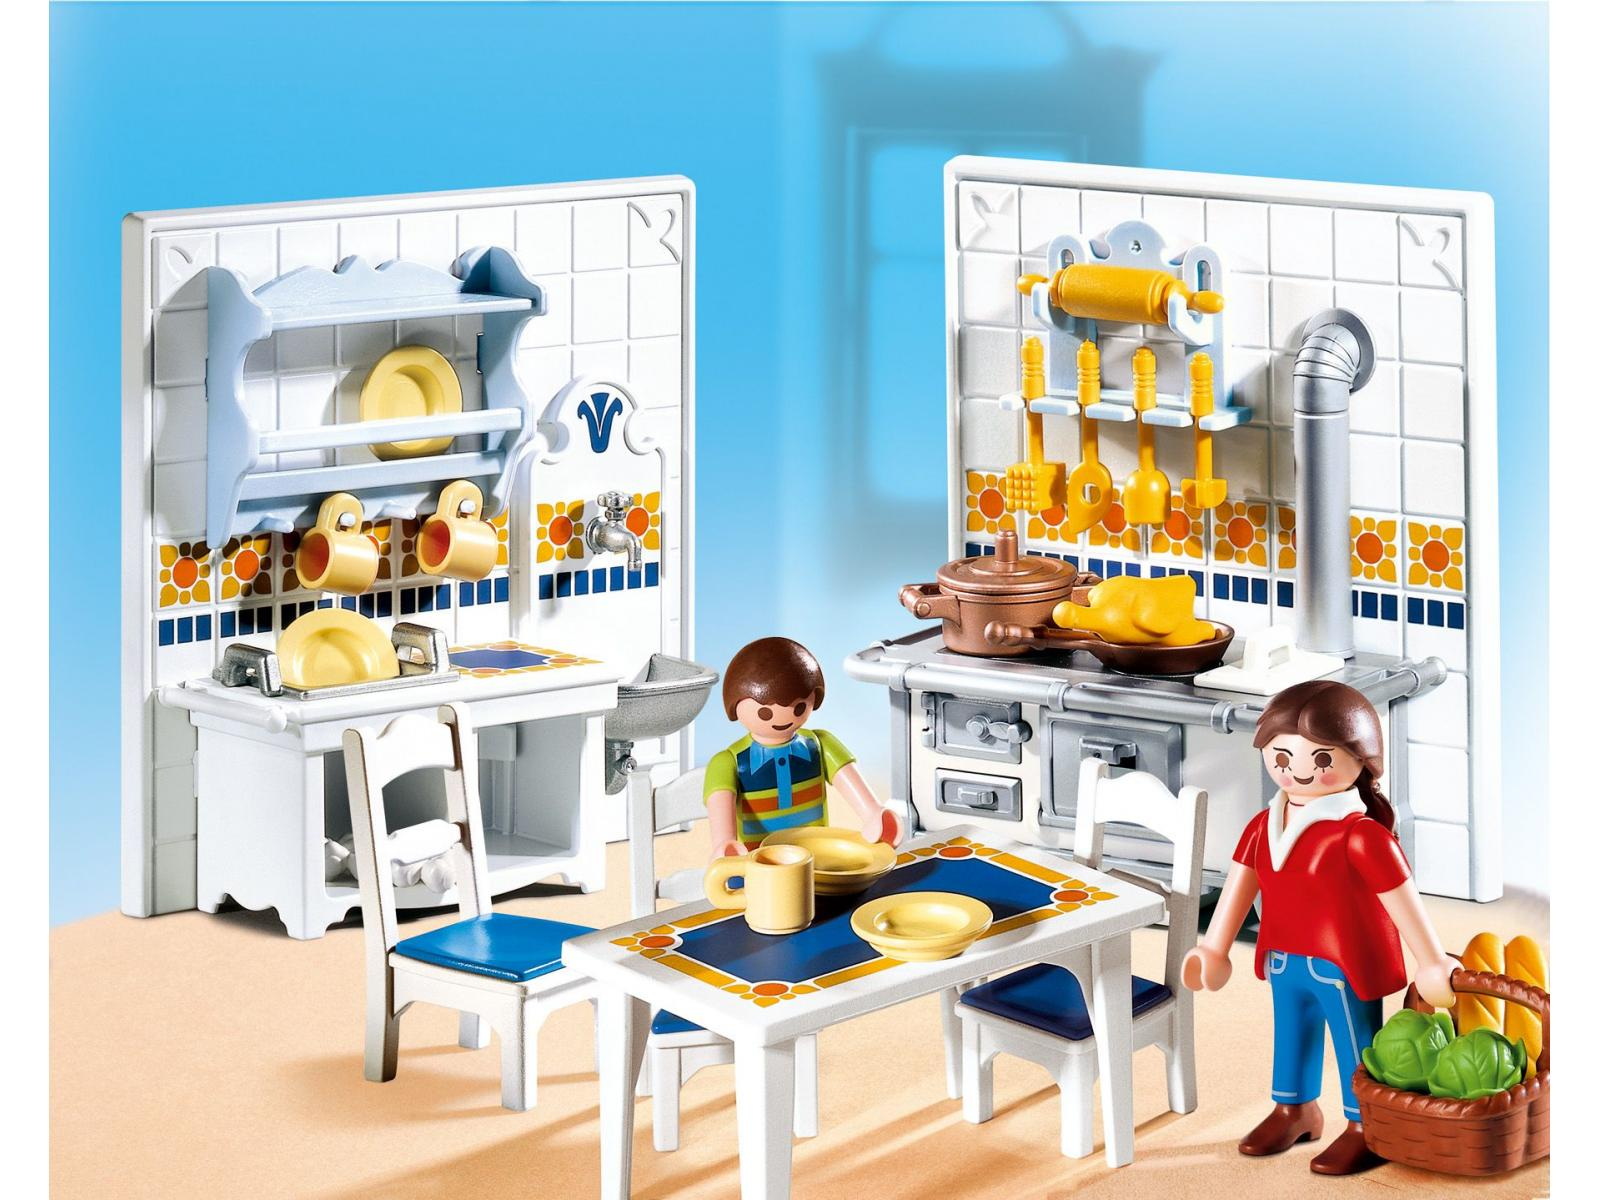 playmobil maison de ville awesome playmobil maison de ville with playmobil maison de ville. Black Bedroom Furniture Sets. Home Design Ideas